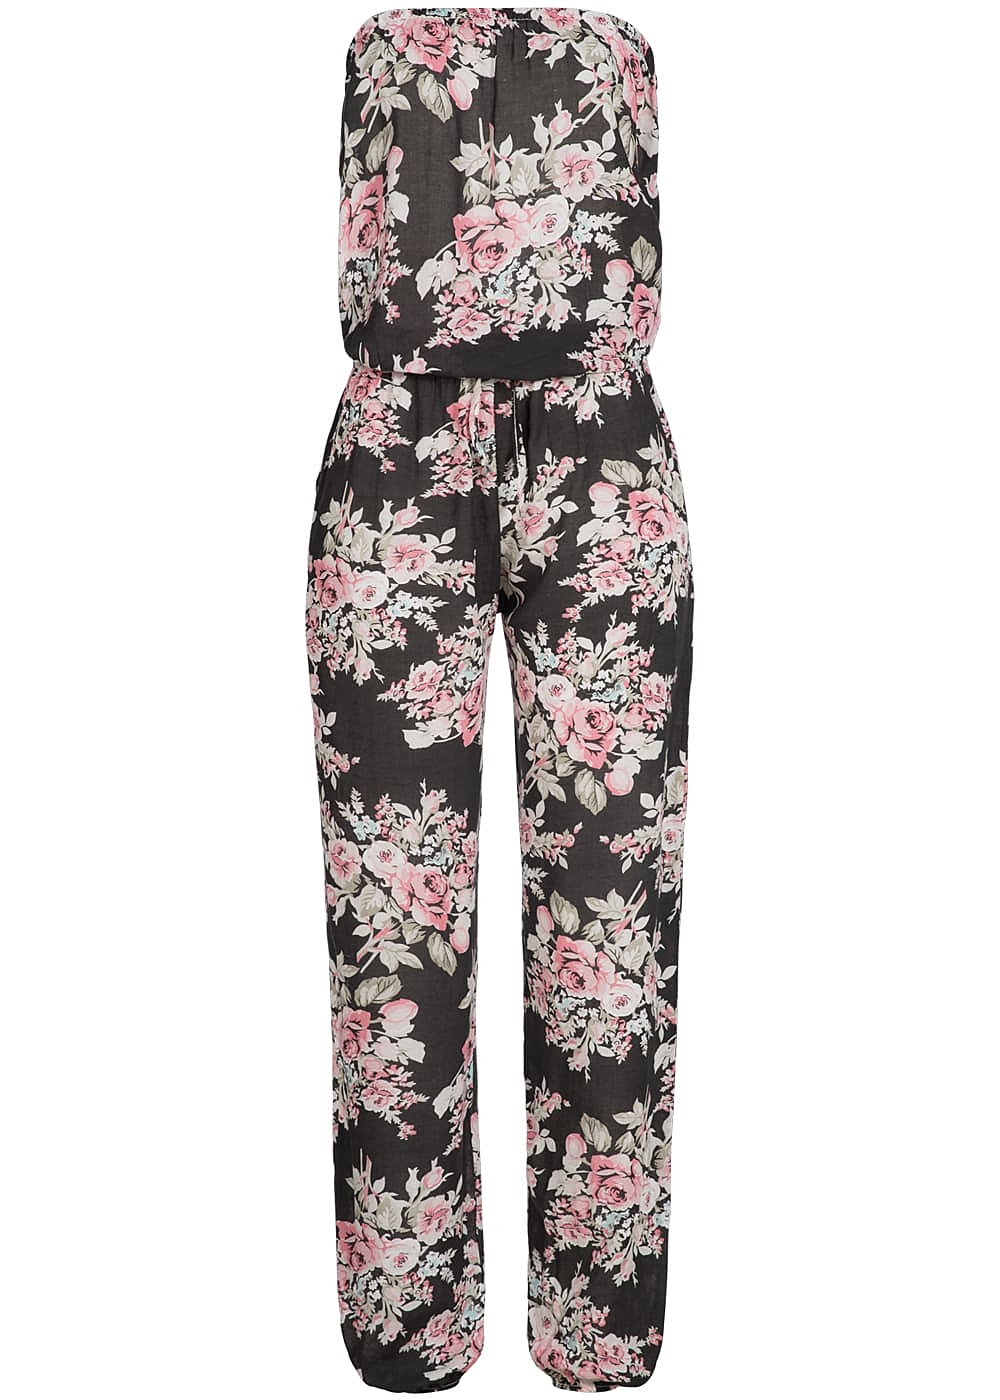 styleboom fashion bandeau jumpsuit blumen muster tunnelzug schwarz rosa 77onlineshop. Black Bedroom Furniture Sets. Home Design Ideas